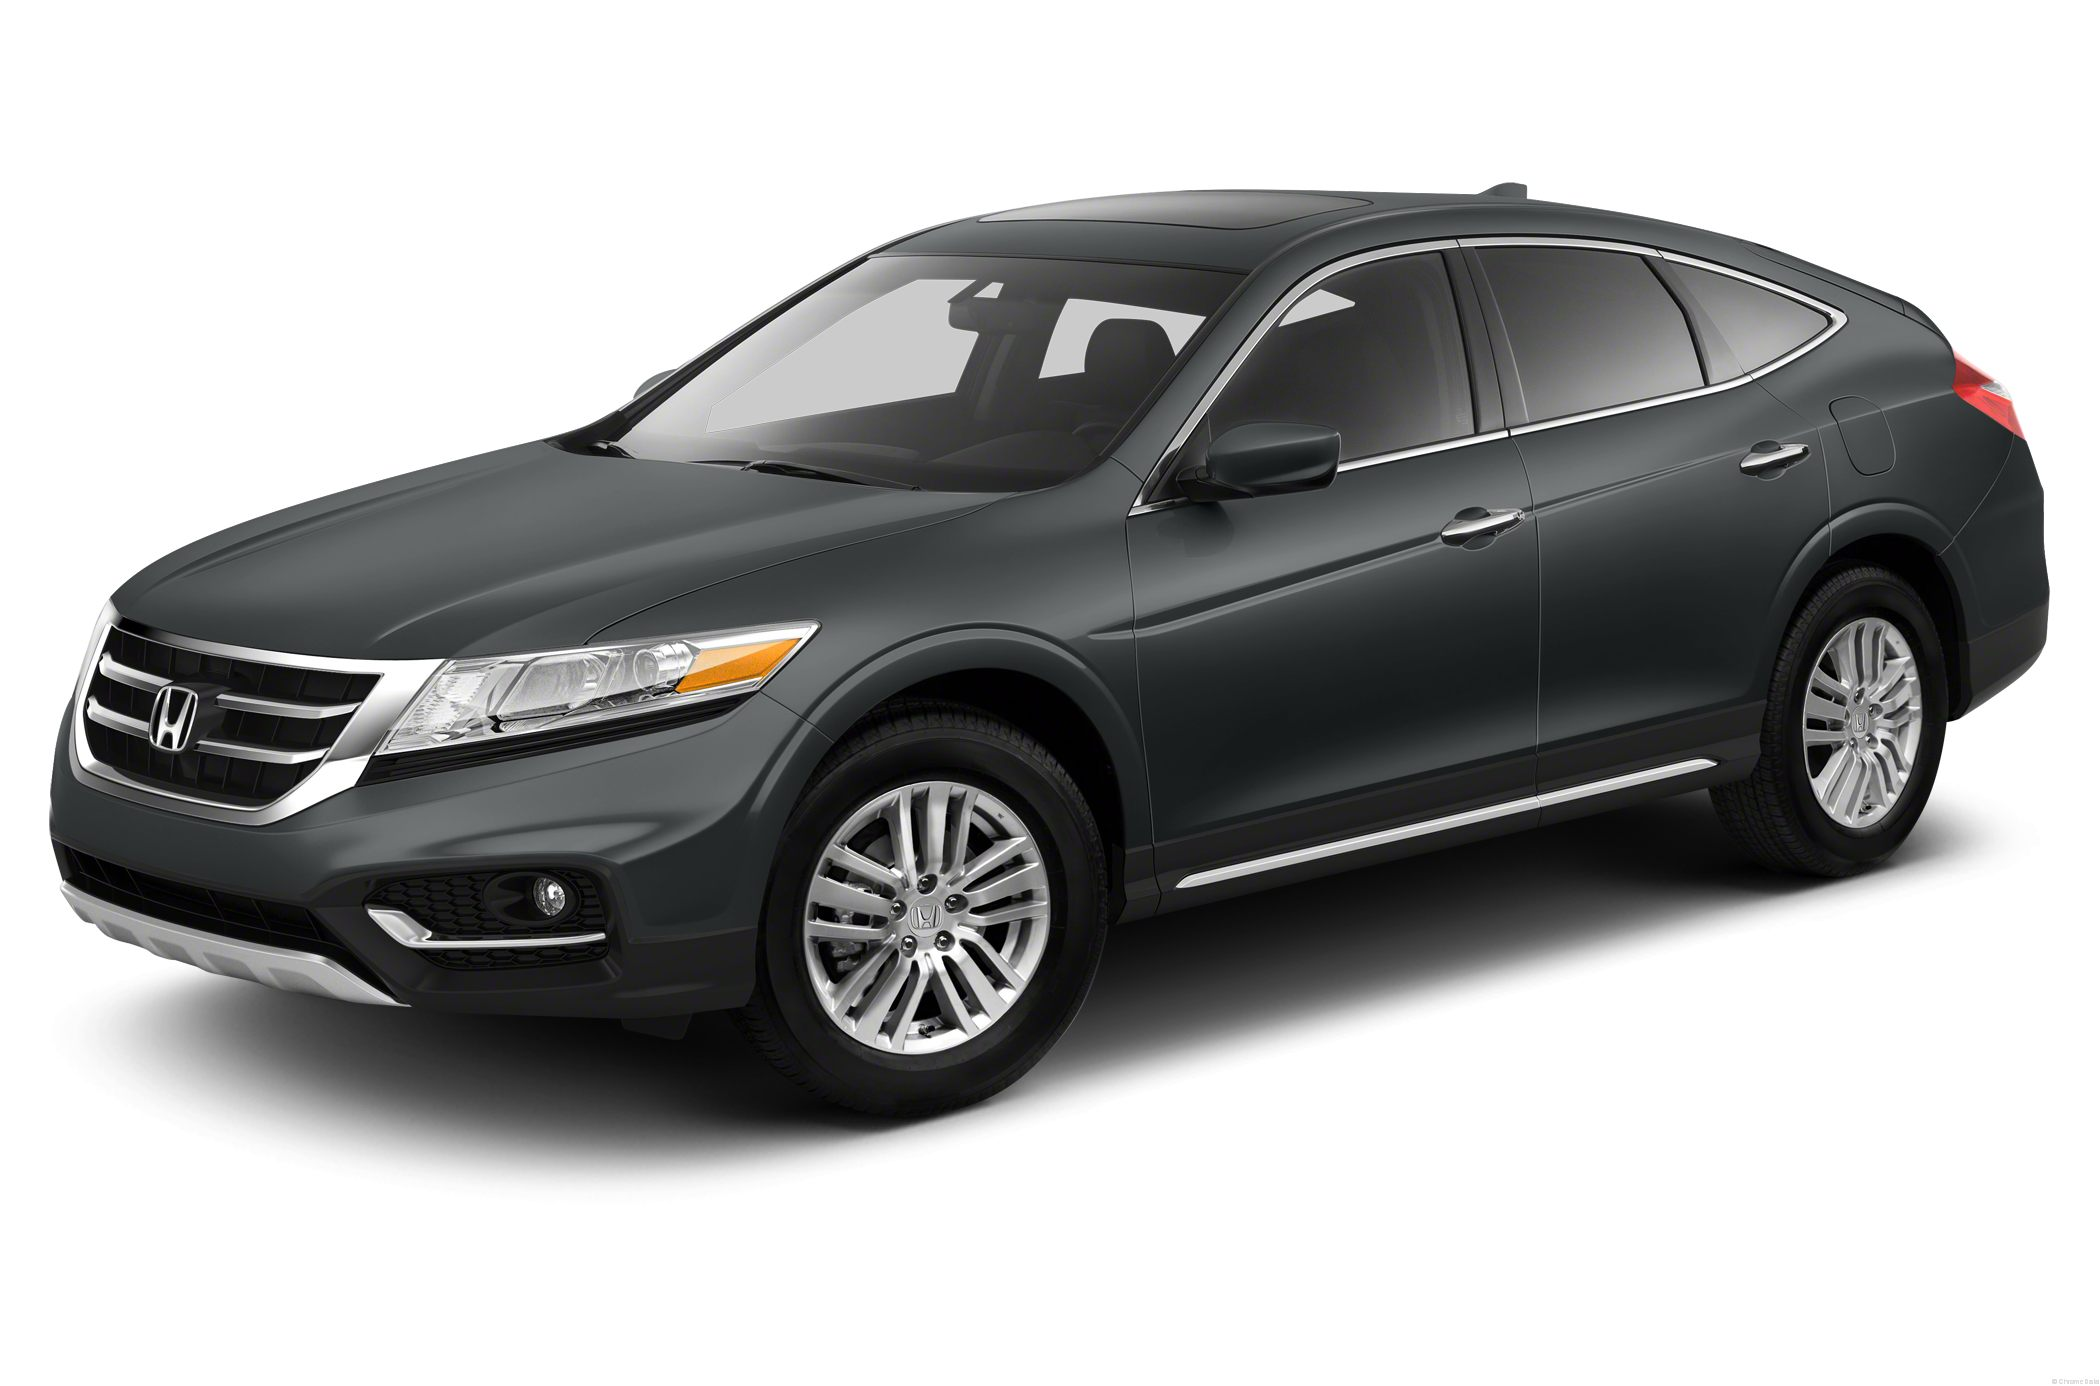 2013 honda crosstour pictures information and specs auto. Black Bedroom Furniture Sets. Home Design Ideas